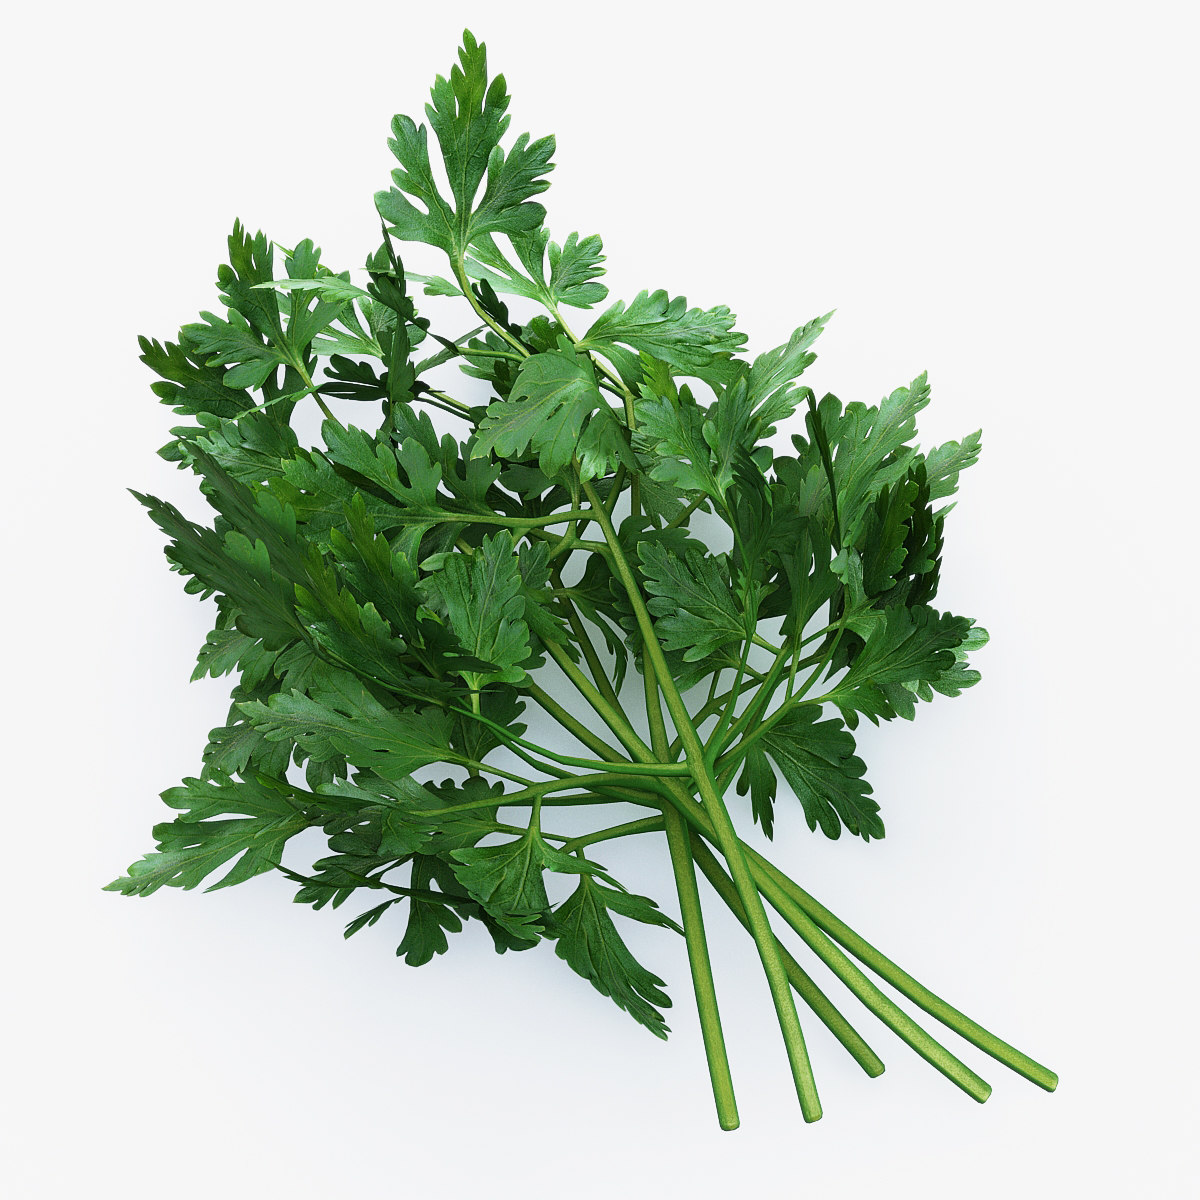 Parsley_01.jpg